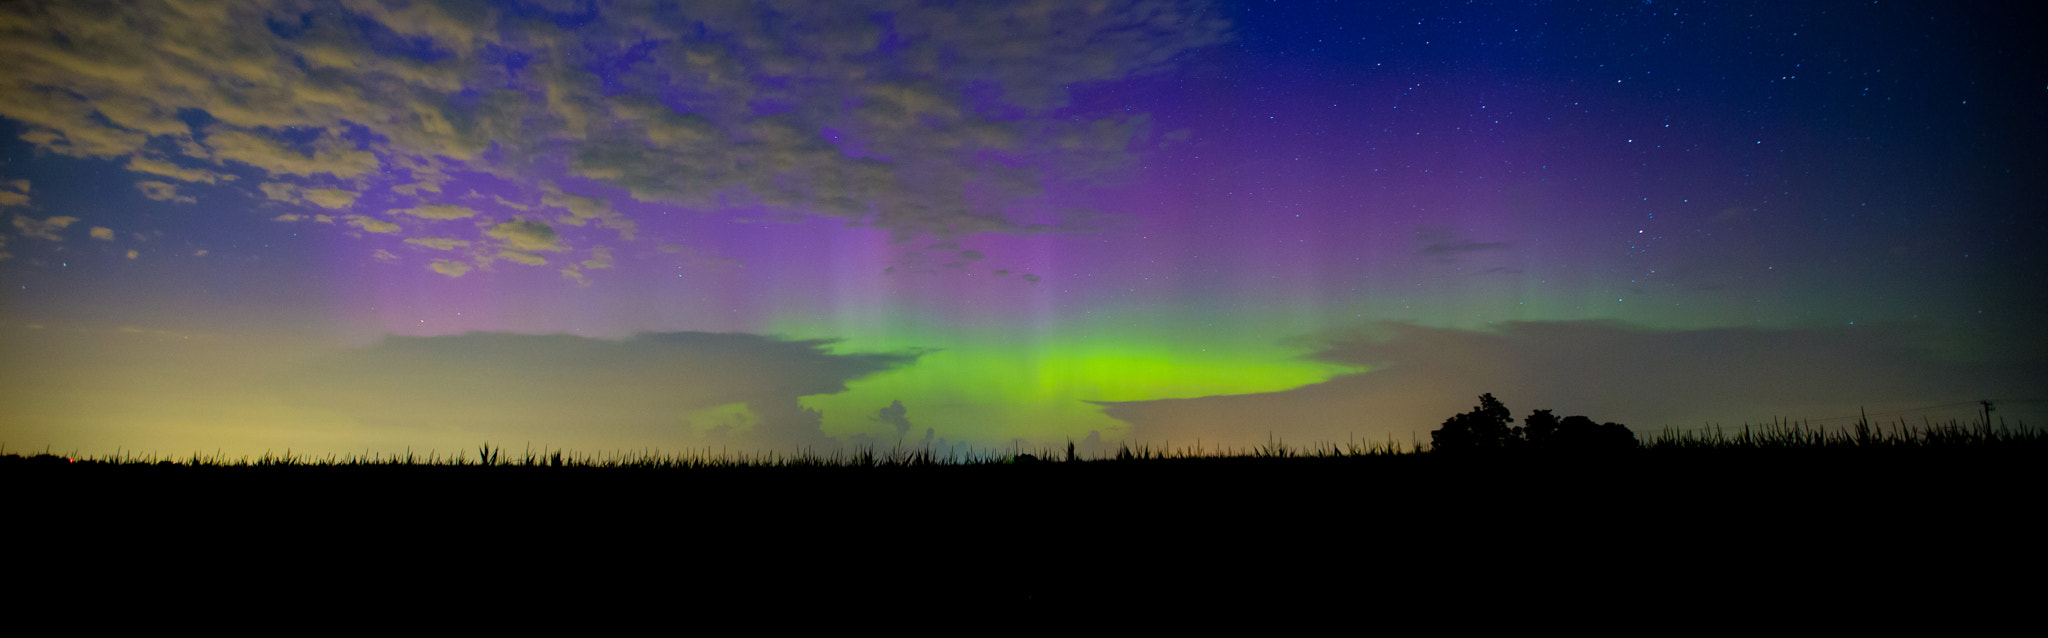 Photograph Northern Lights by C. Feggestad on 500px